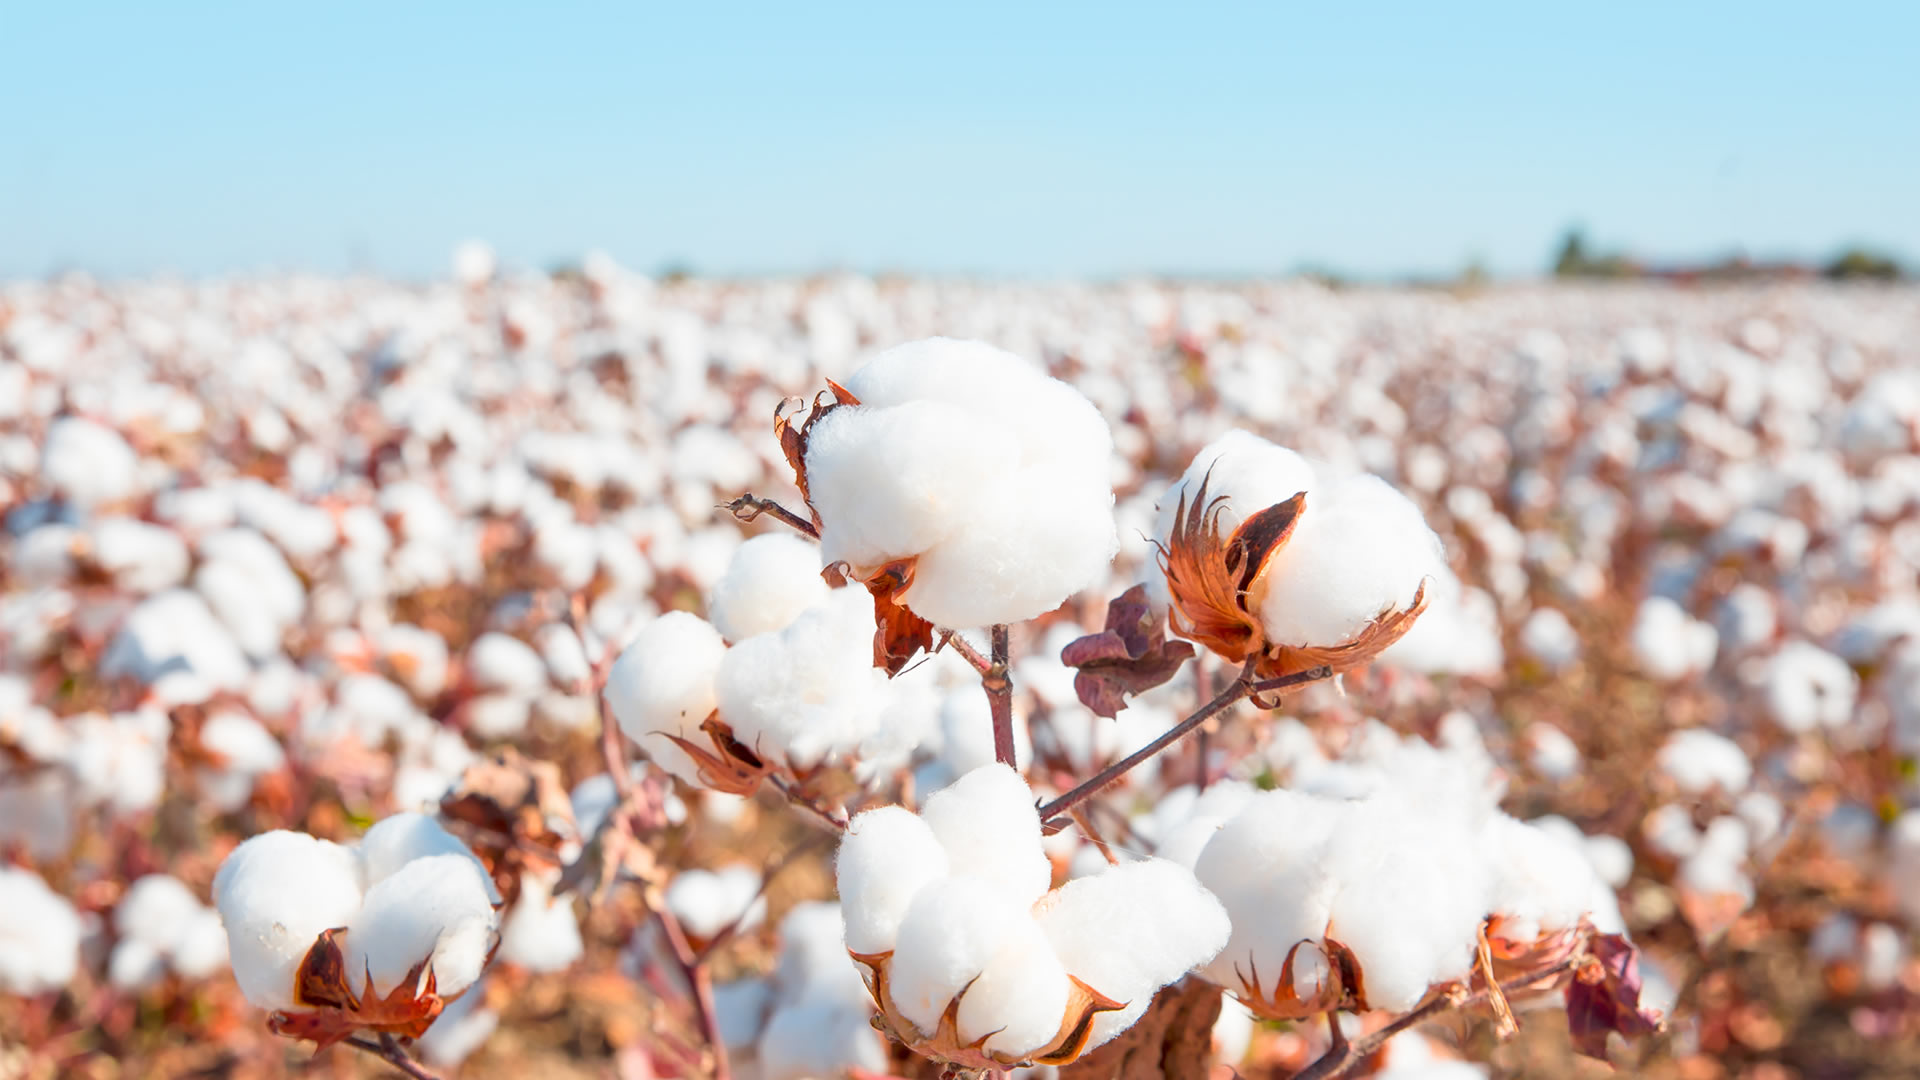 Nigeria's Cotton Production to Account for 20.29% of Africa's production by 2029